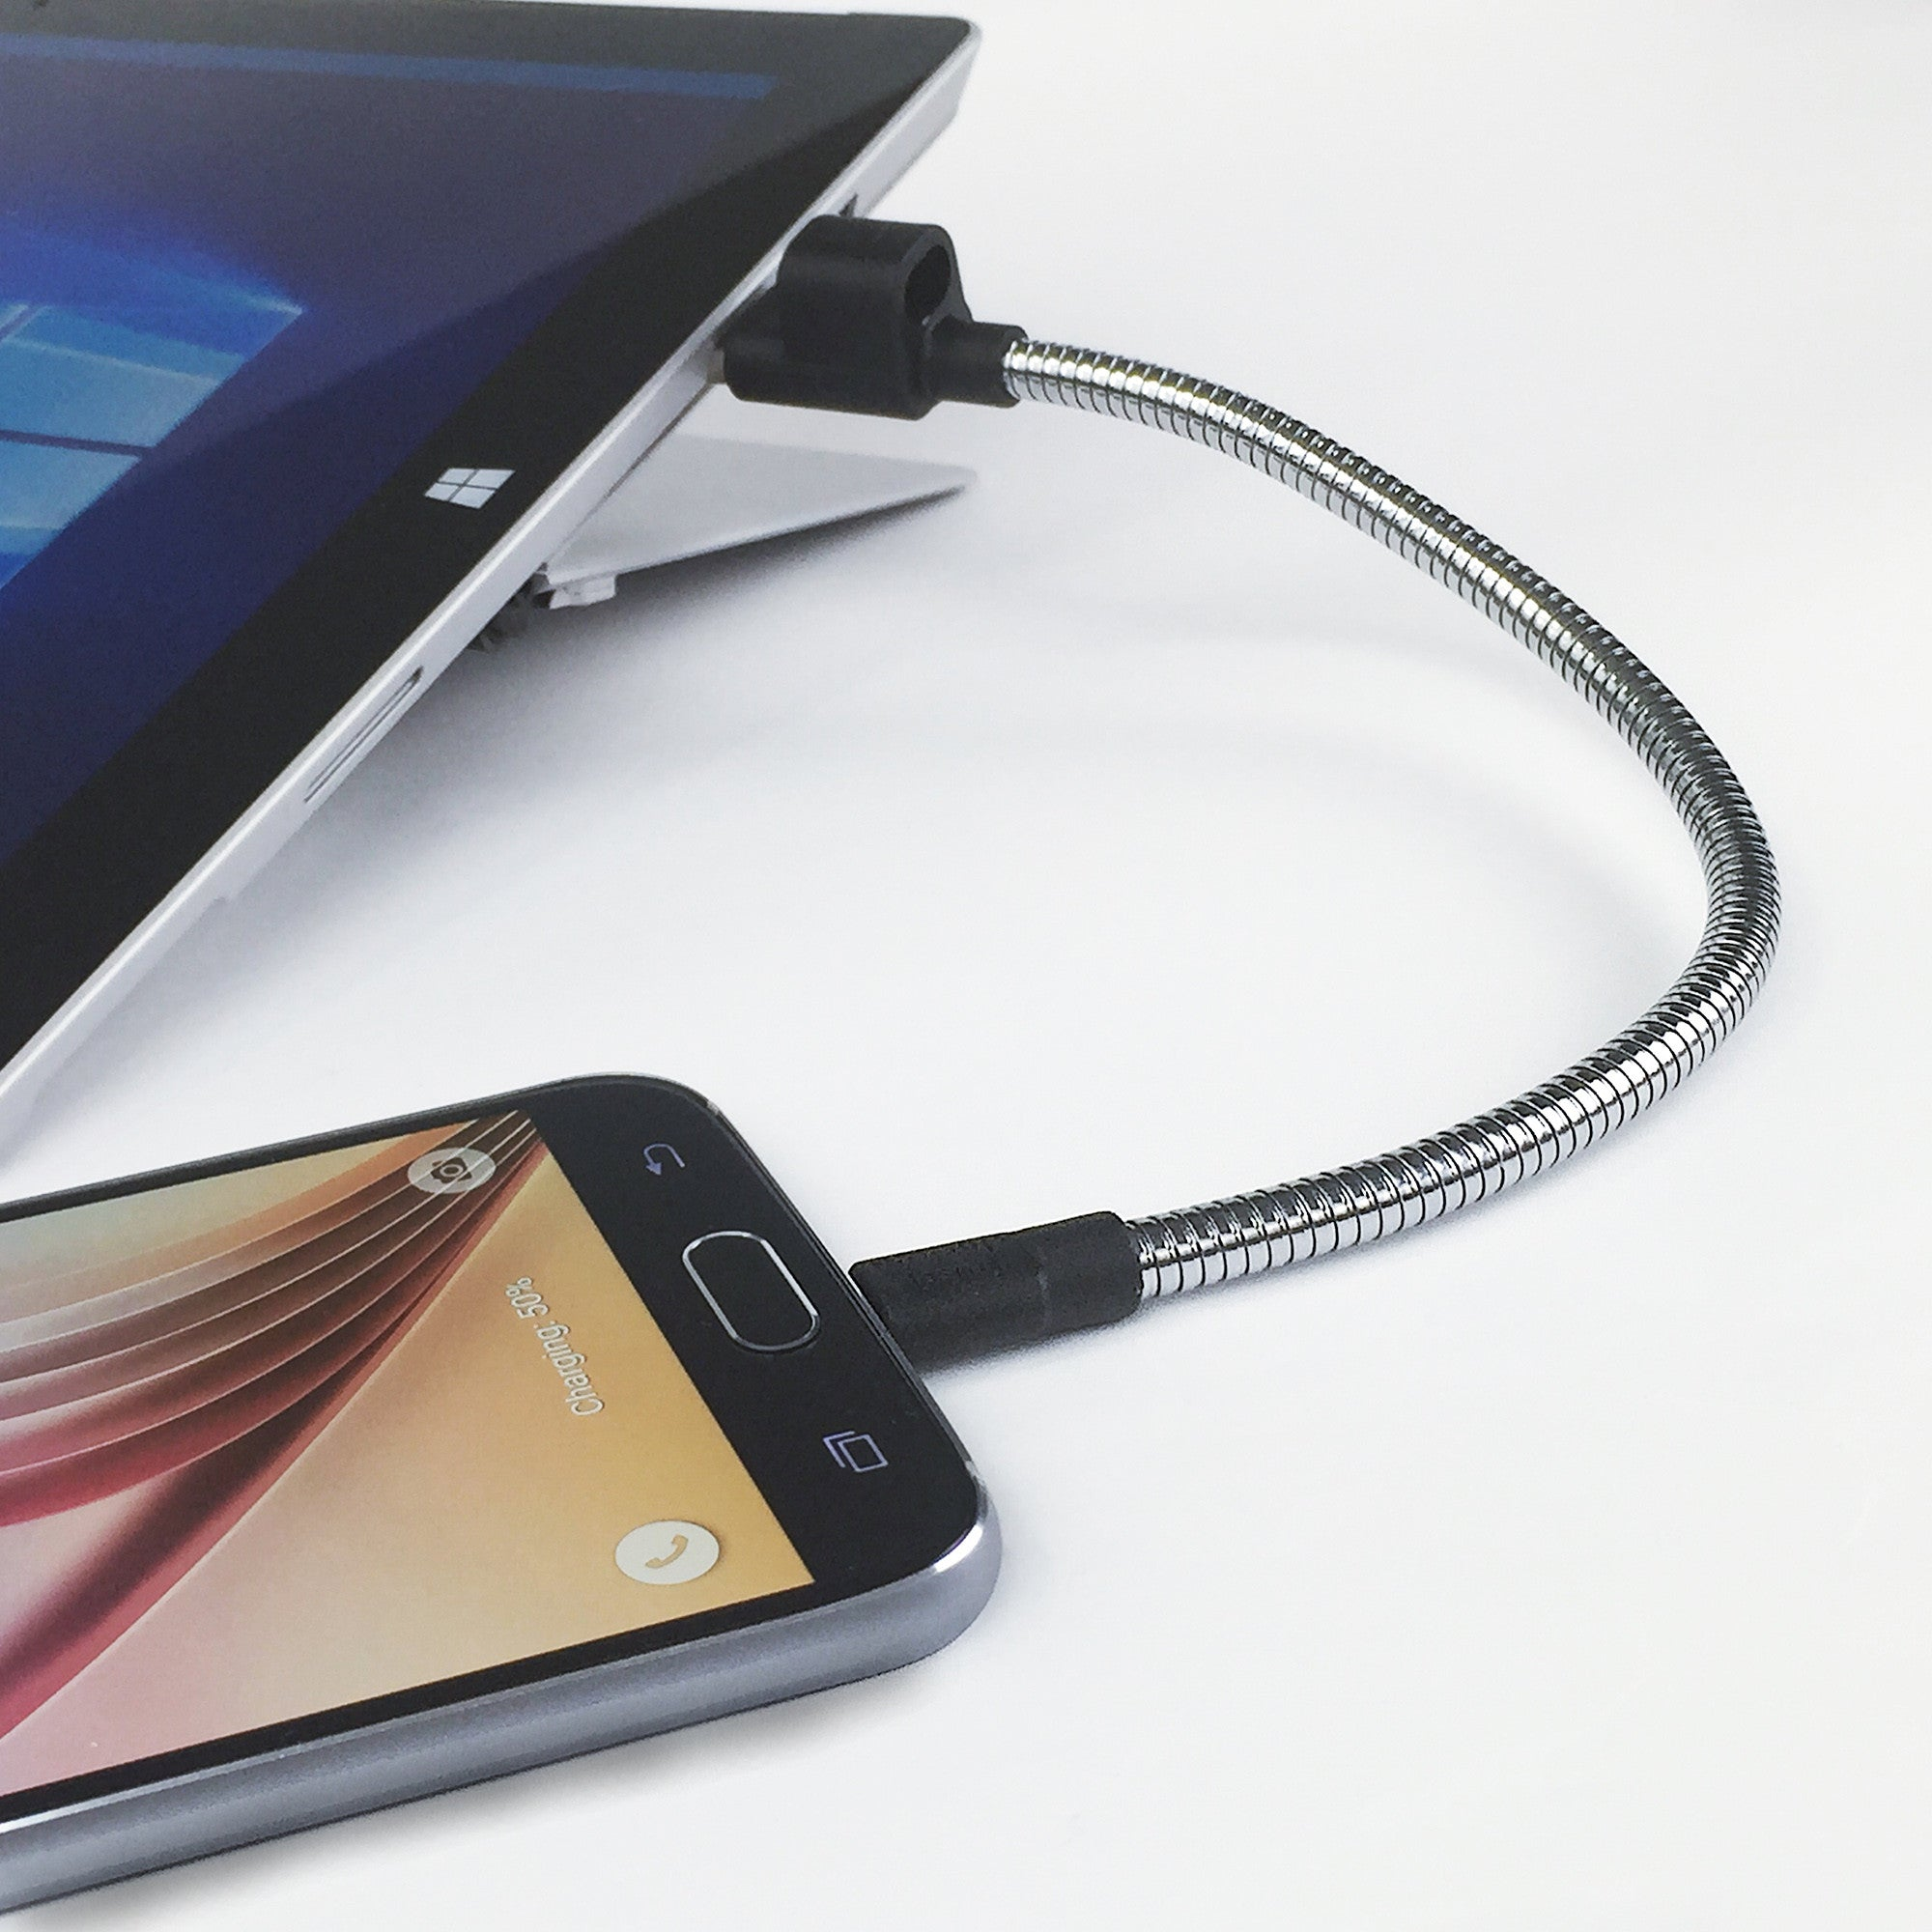 TITAN LOOP M :: Android | The Toughest Key Chain Cable on Earth